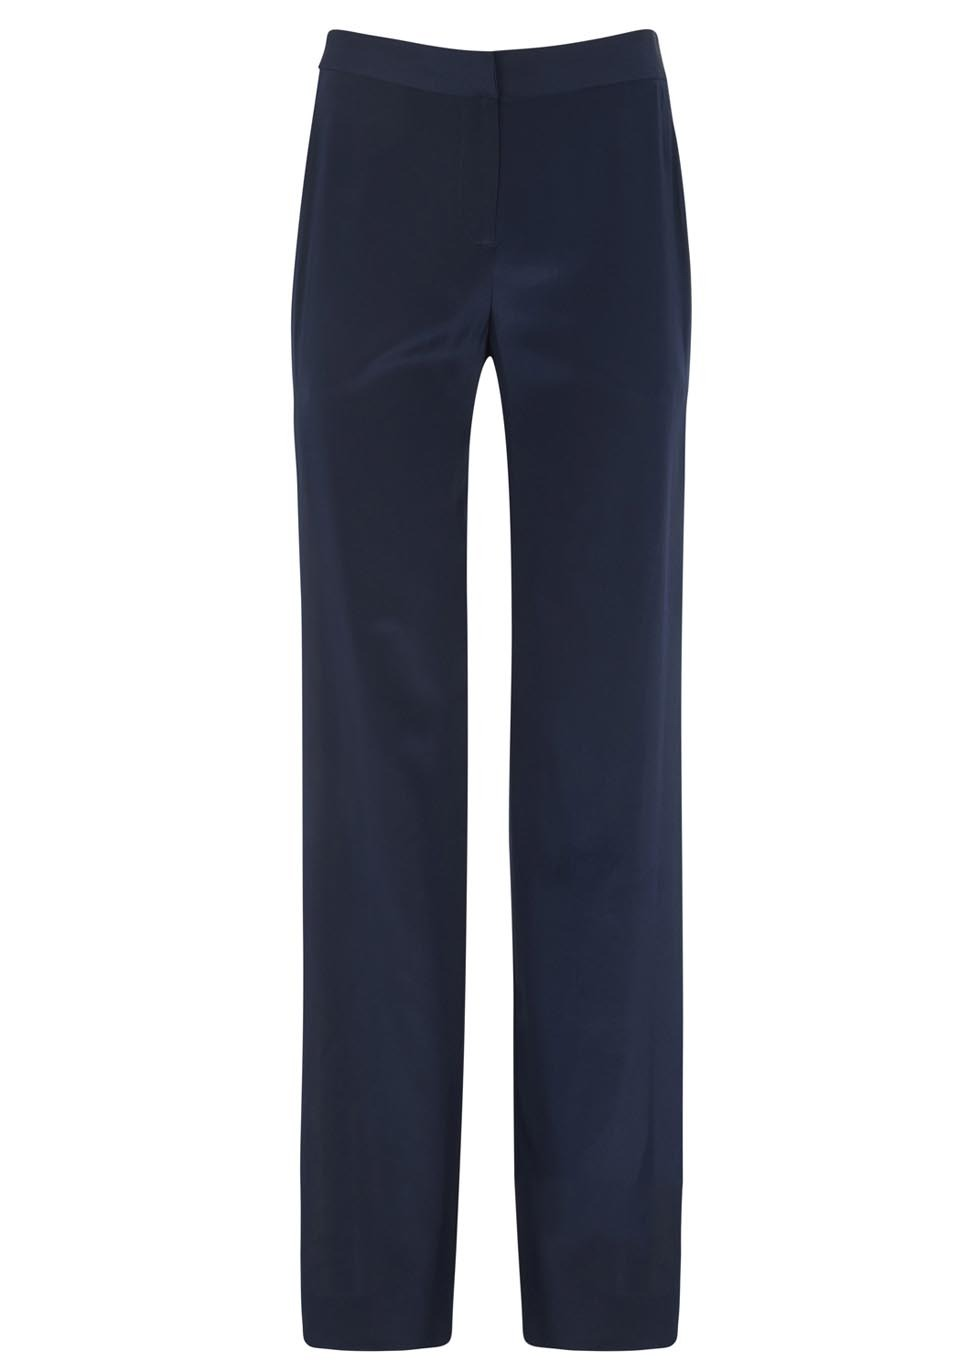 Salma Two Tone Wide Leg Silk Trousers - length: standard; pattern: plain; waist: mid/regular rise; predominant colour: navy; occasions: casual, evening, work, creative work; fibres: silk - 100%; texture group: silky - light; fit: wide leg; pattern type: fabric; style: standard; season: s/s 2014